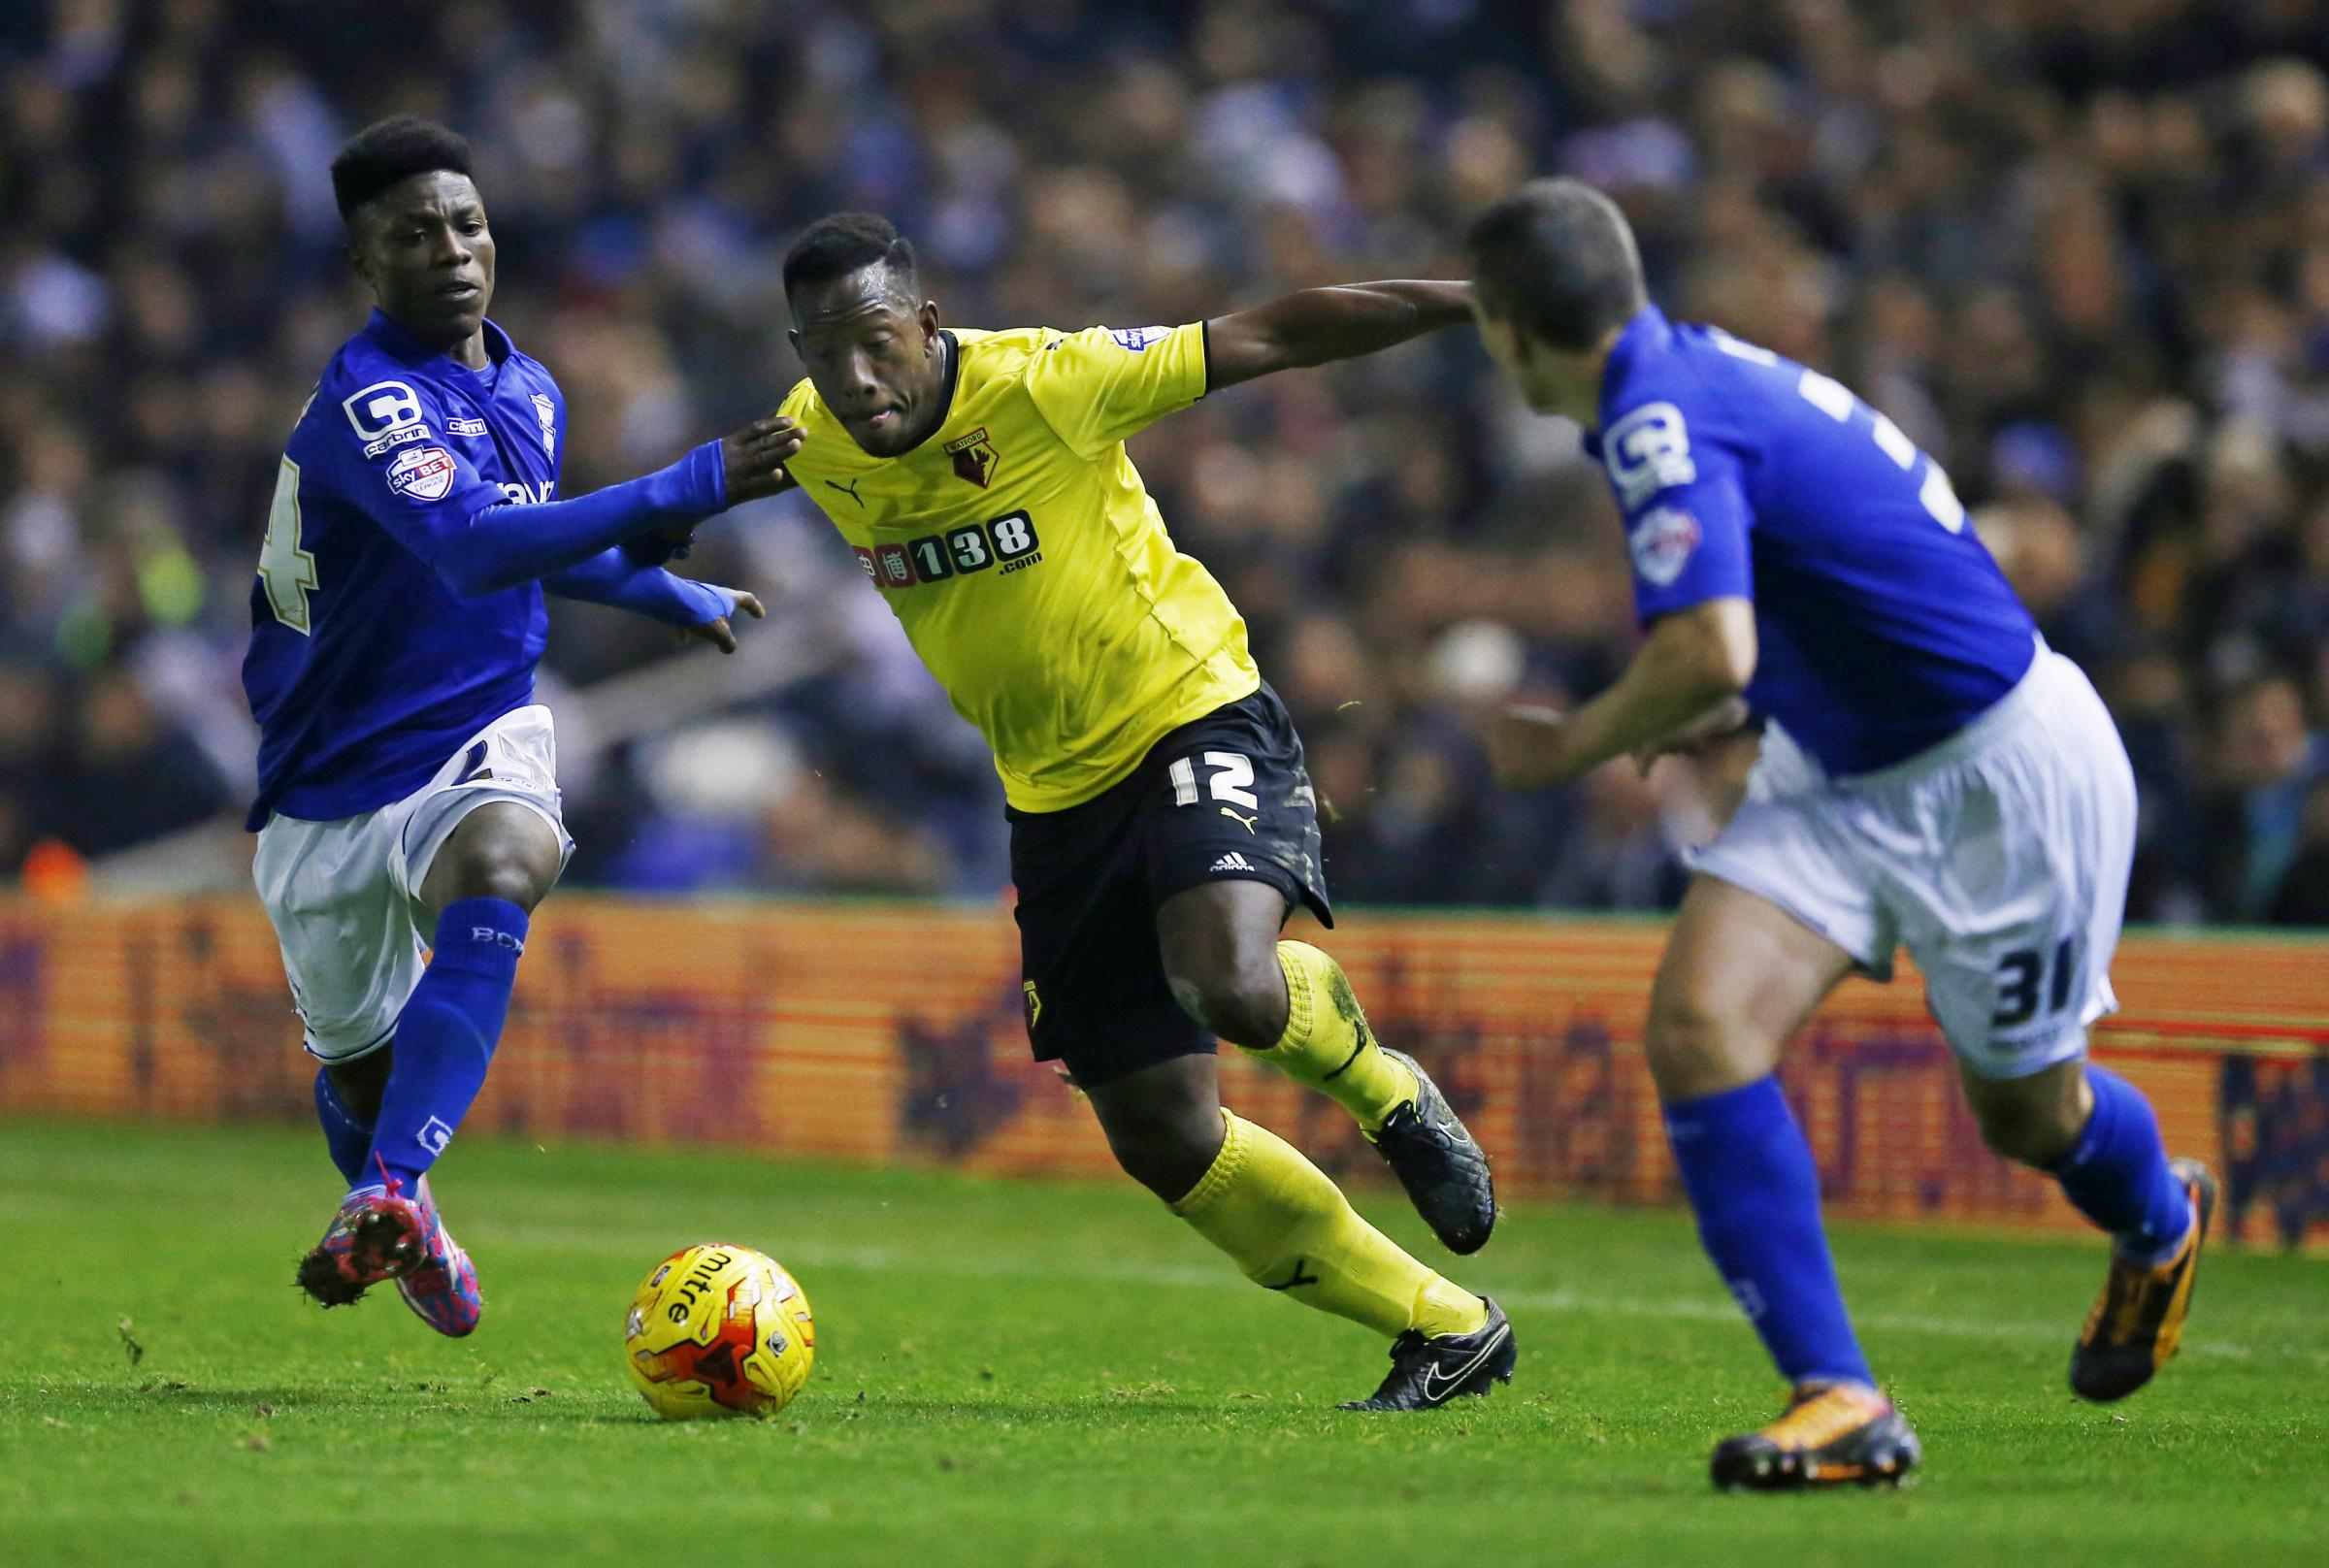 Former Watford defender Lloyd Doyley discusses Kings Langley move